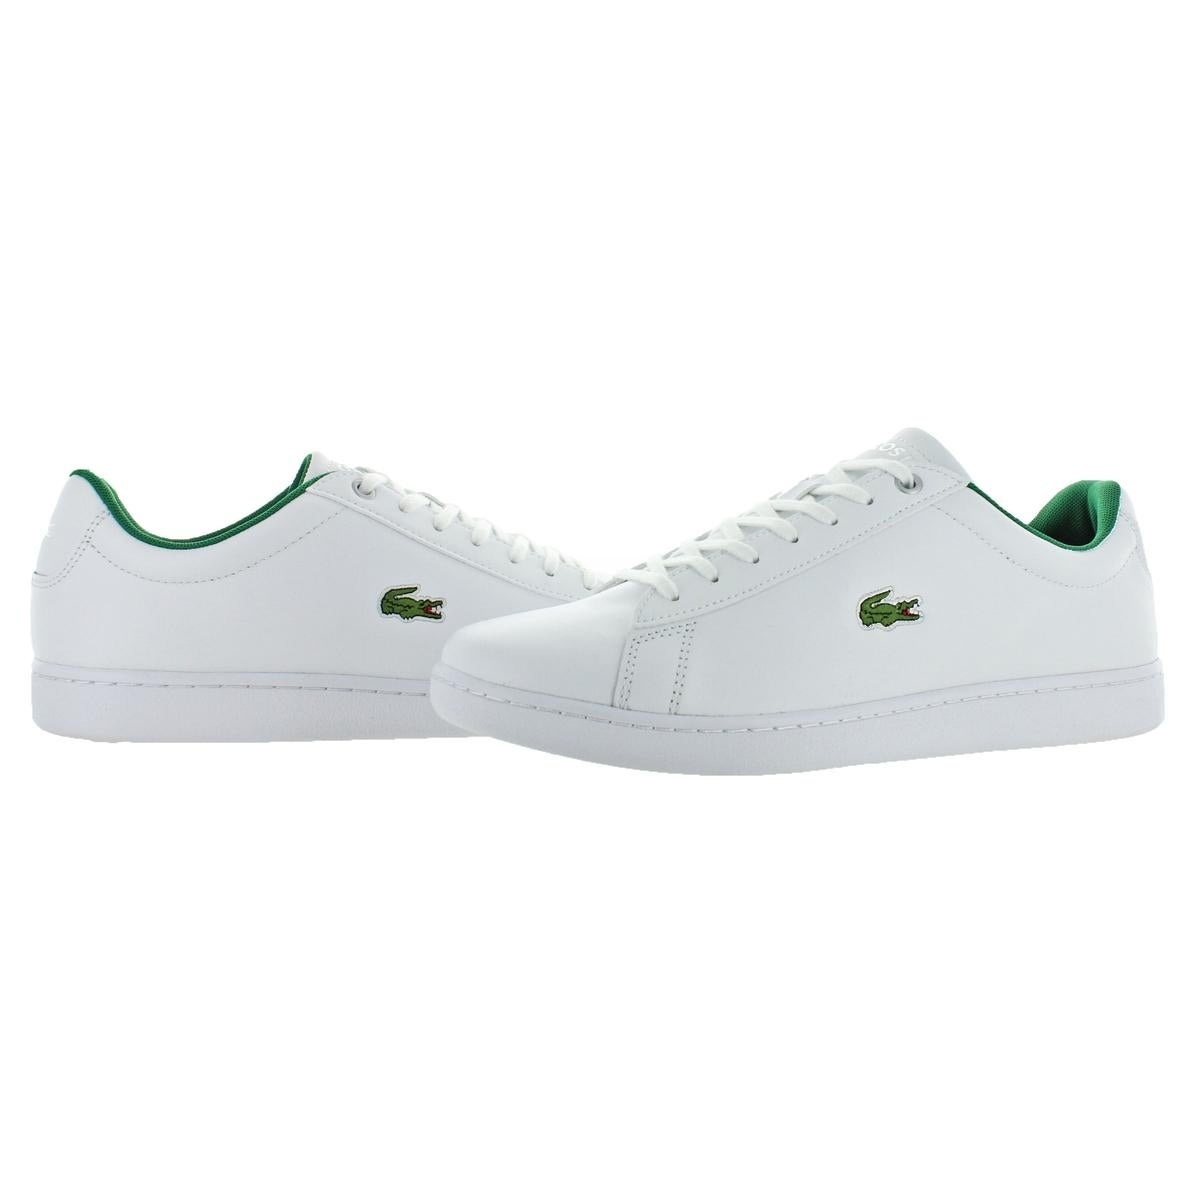 9e93657e91d2 Shop Lacoste Mens Hydez Fashion Sneakers Ortholite Low Top - Free Shipping  Today - Overstock - 23127228